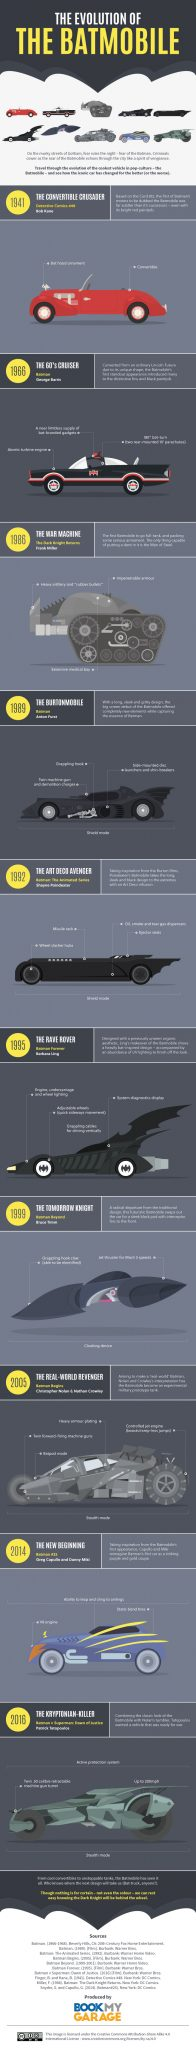 the-evolution-of-the-batmobile-155221